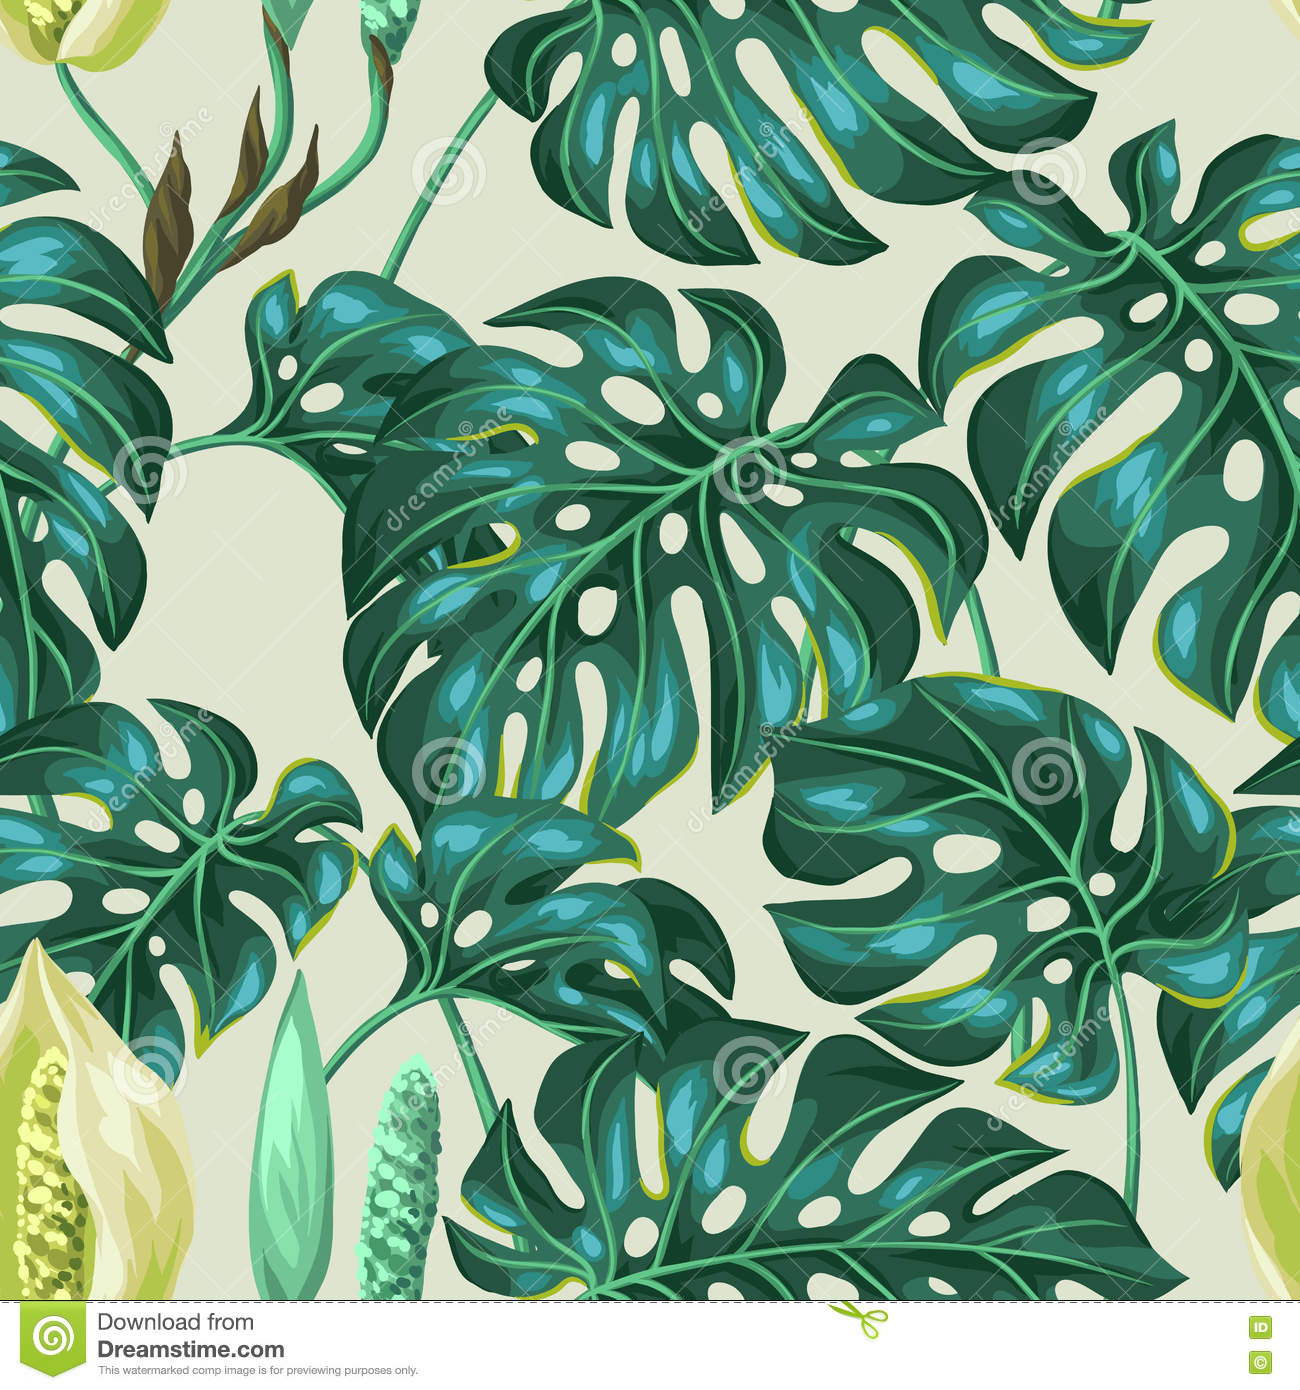 Seamless Pattern With Monstera Leaves. Decorative Image Of